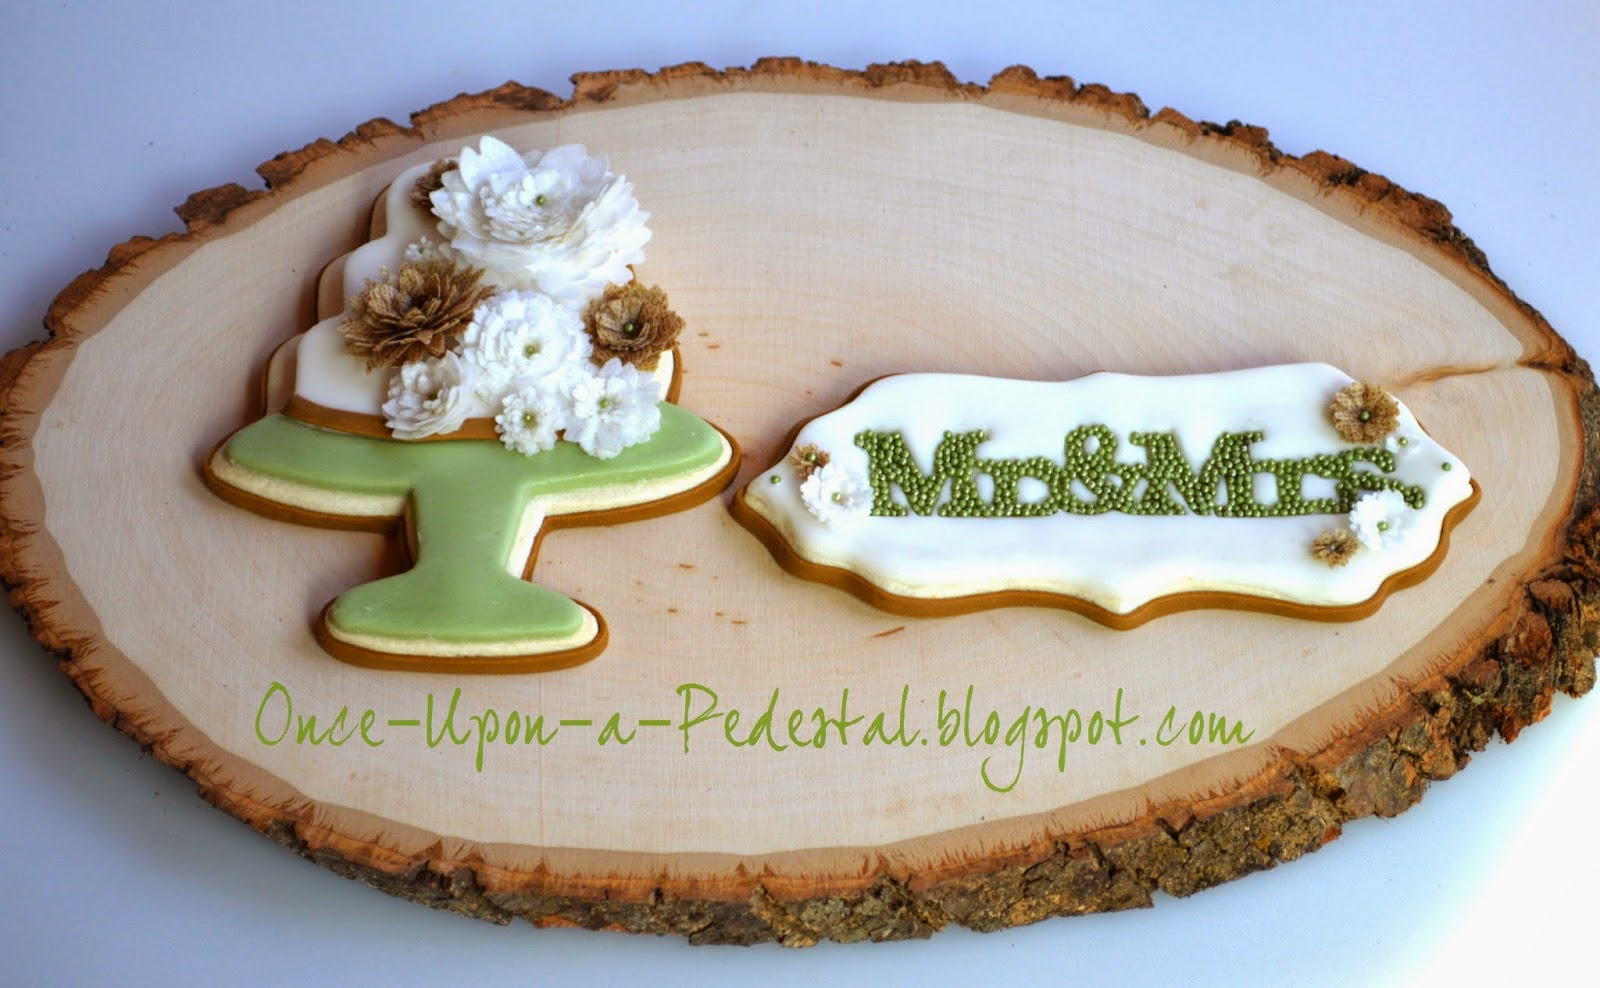 wedding-cookies-wafer-paper-mr-and-mrs-cookie-con-salt-lake-city-utah-deborah-stauch